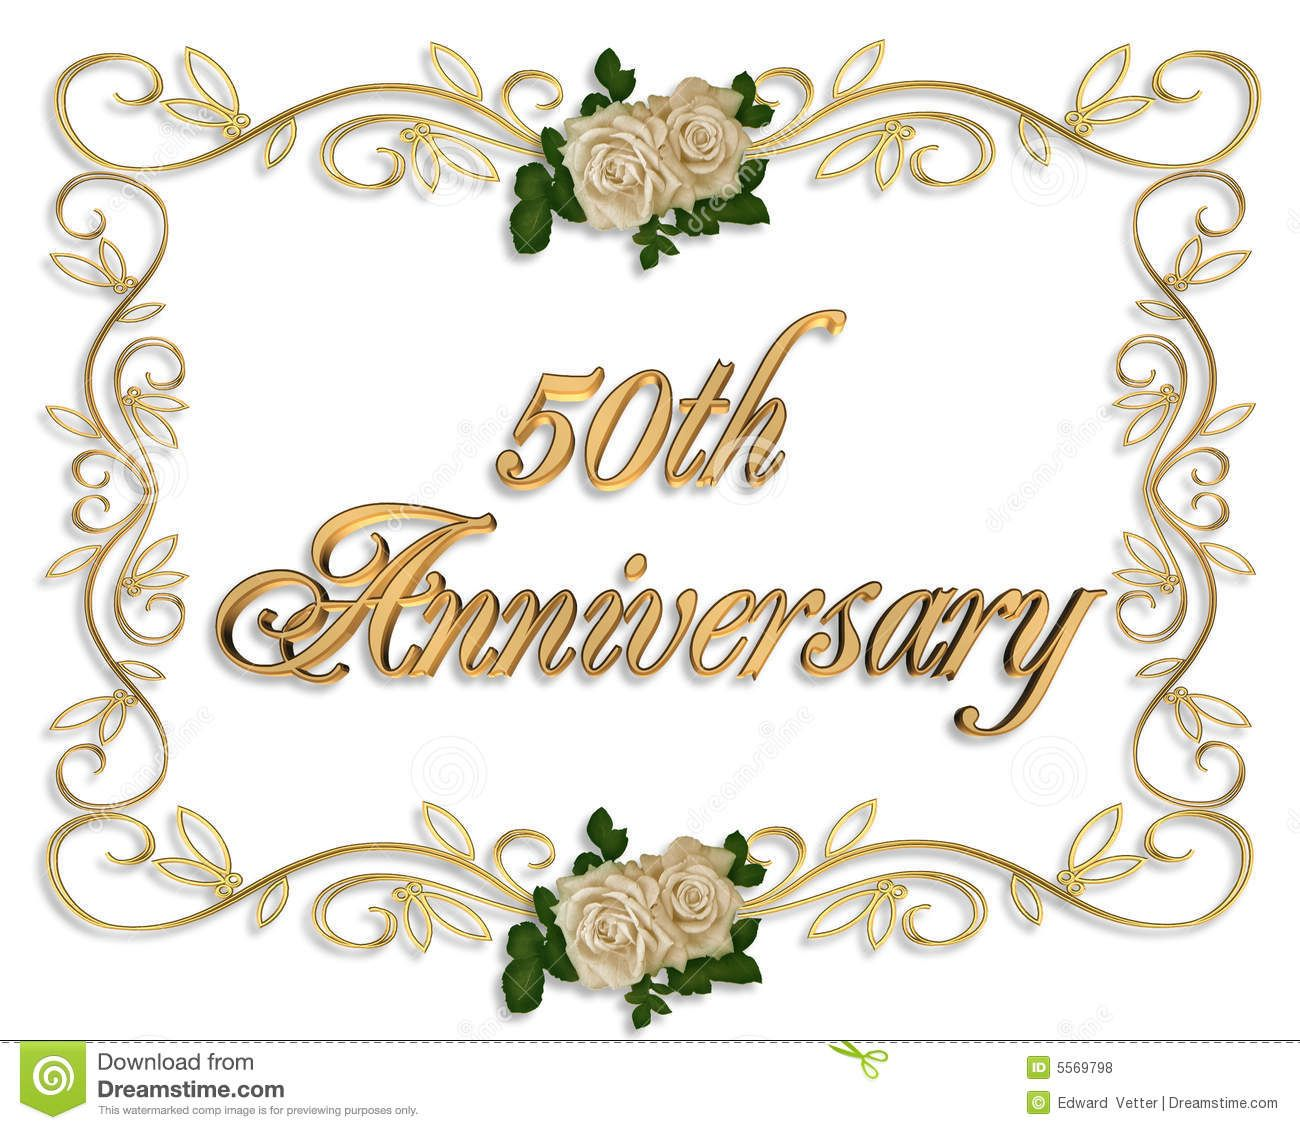 50 anniversary  Happy 50th Anniversary Clip Art 50th anniversary invitation  PARTY